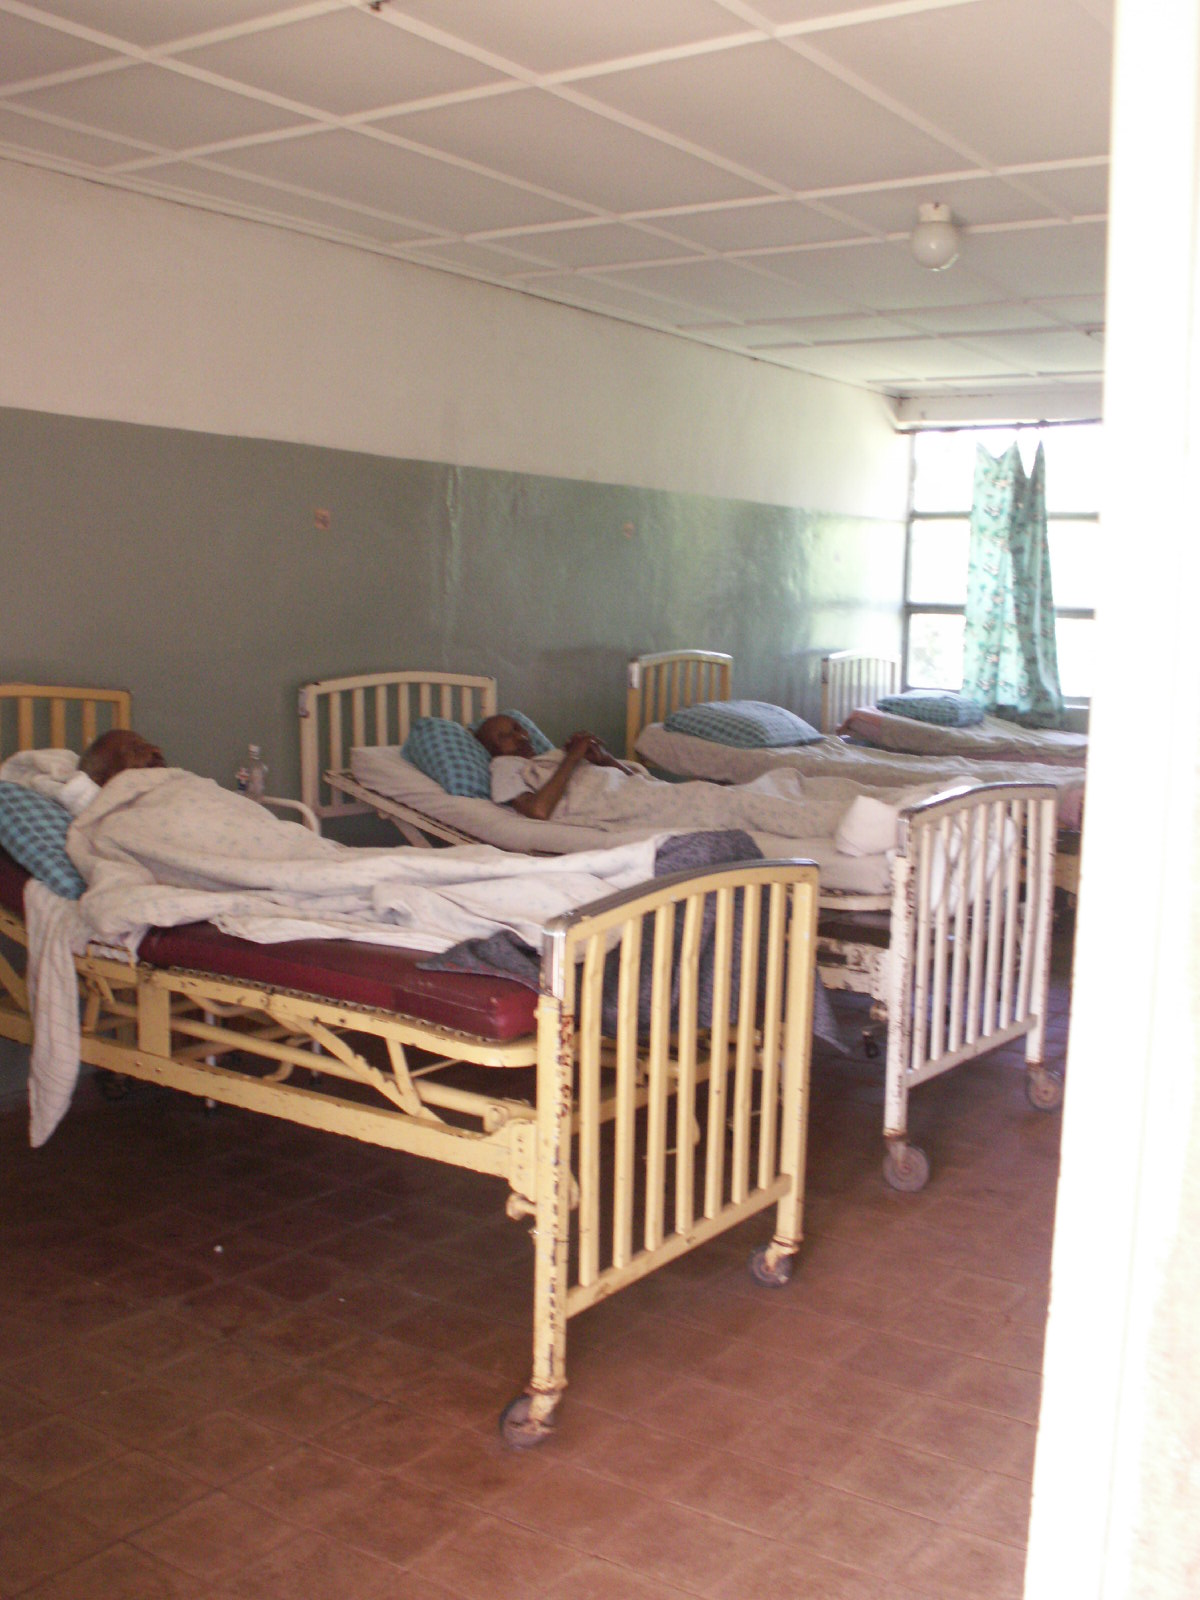 Patients at Aira Hospital